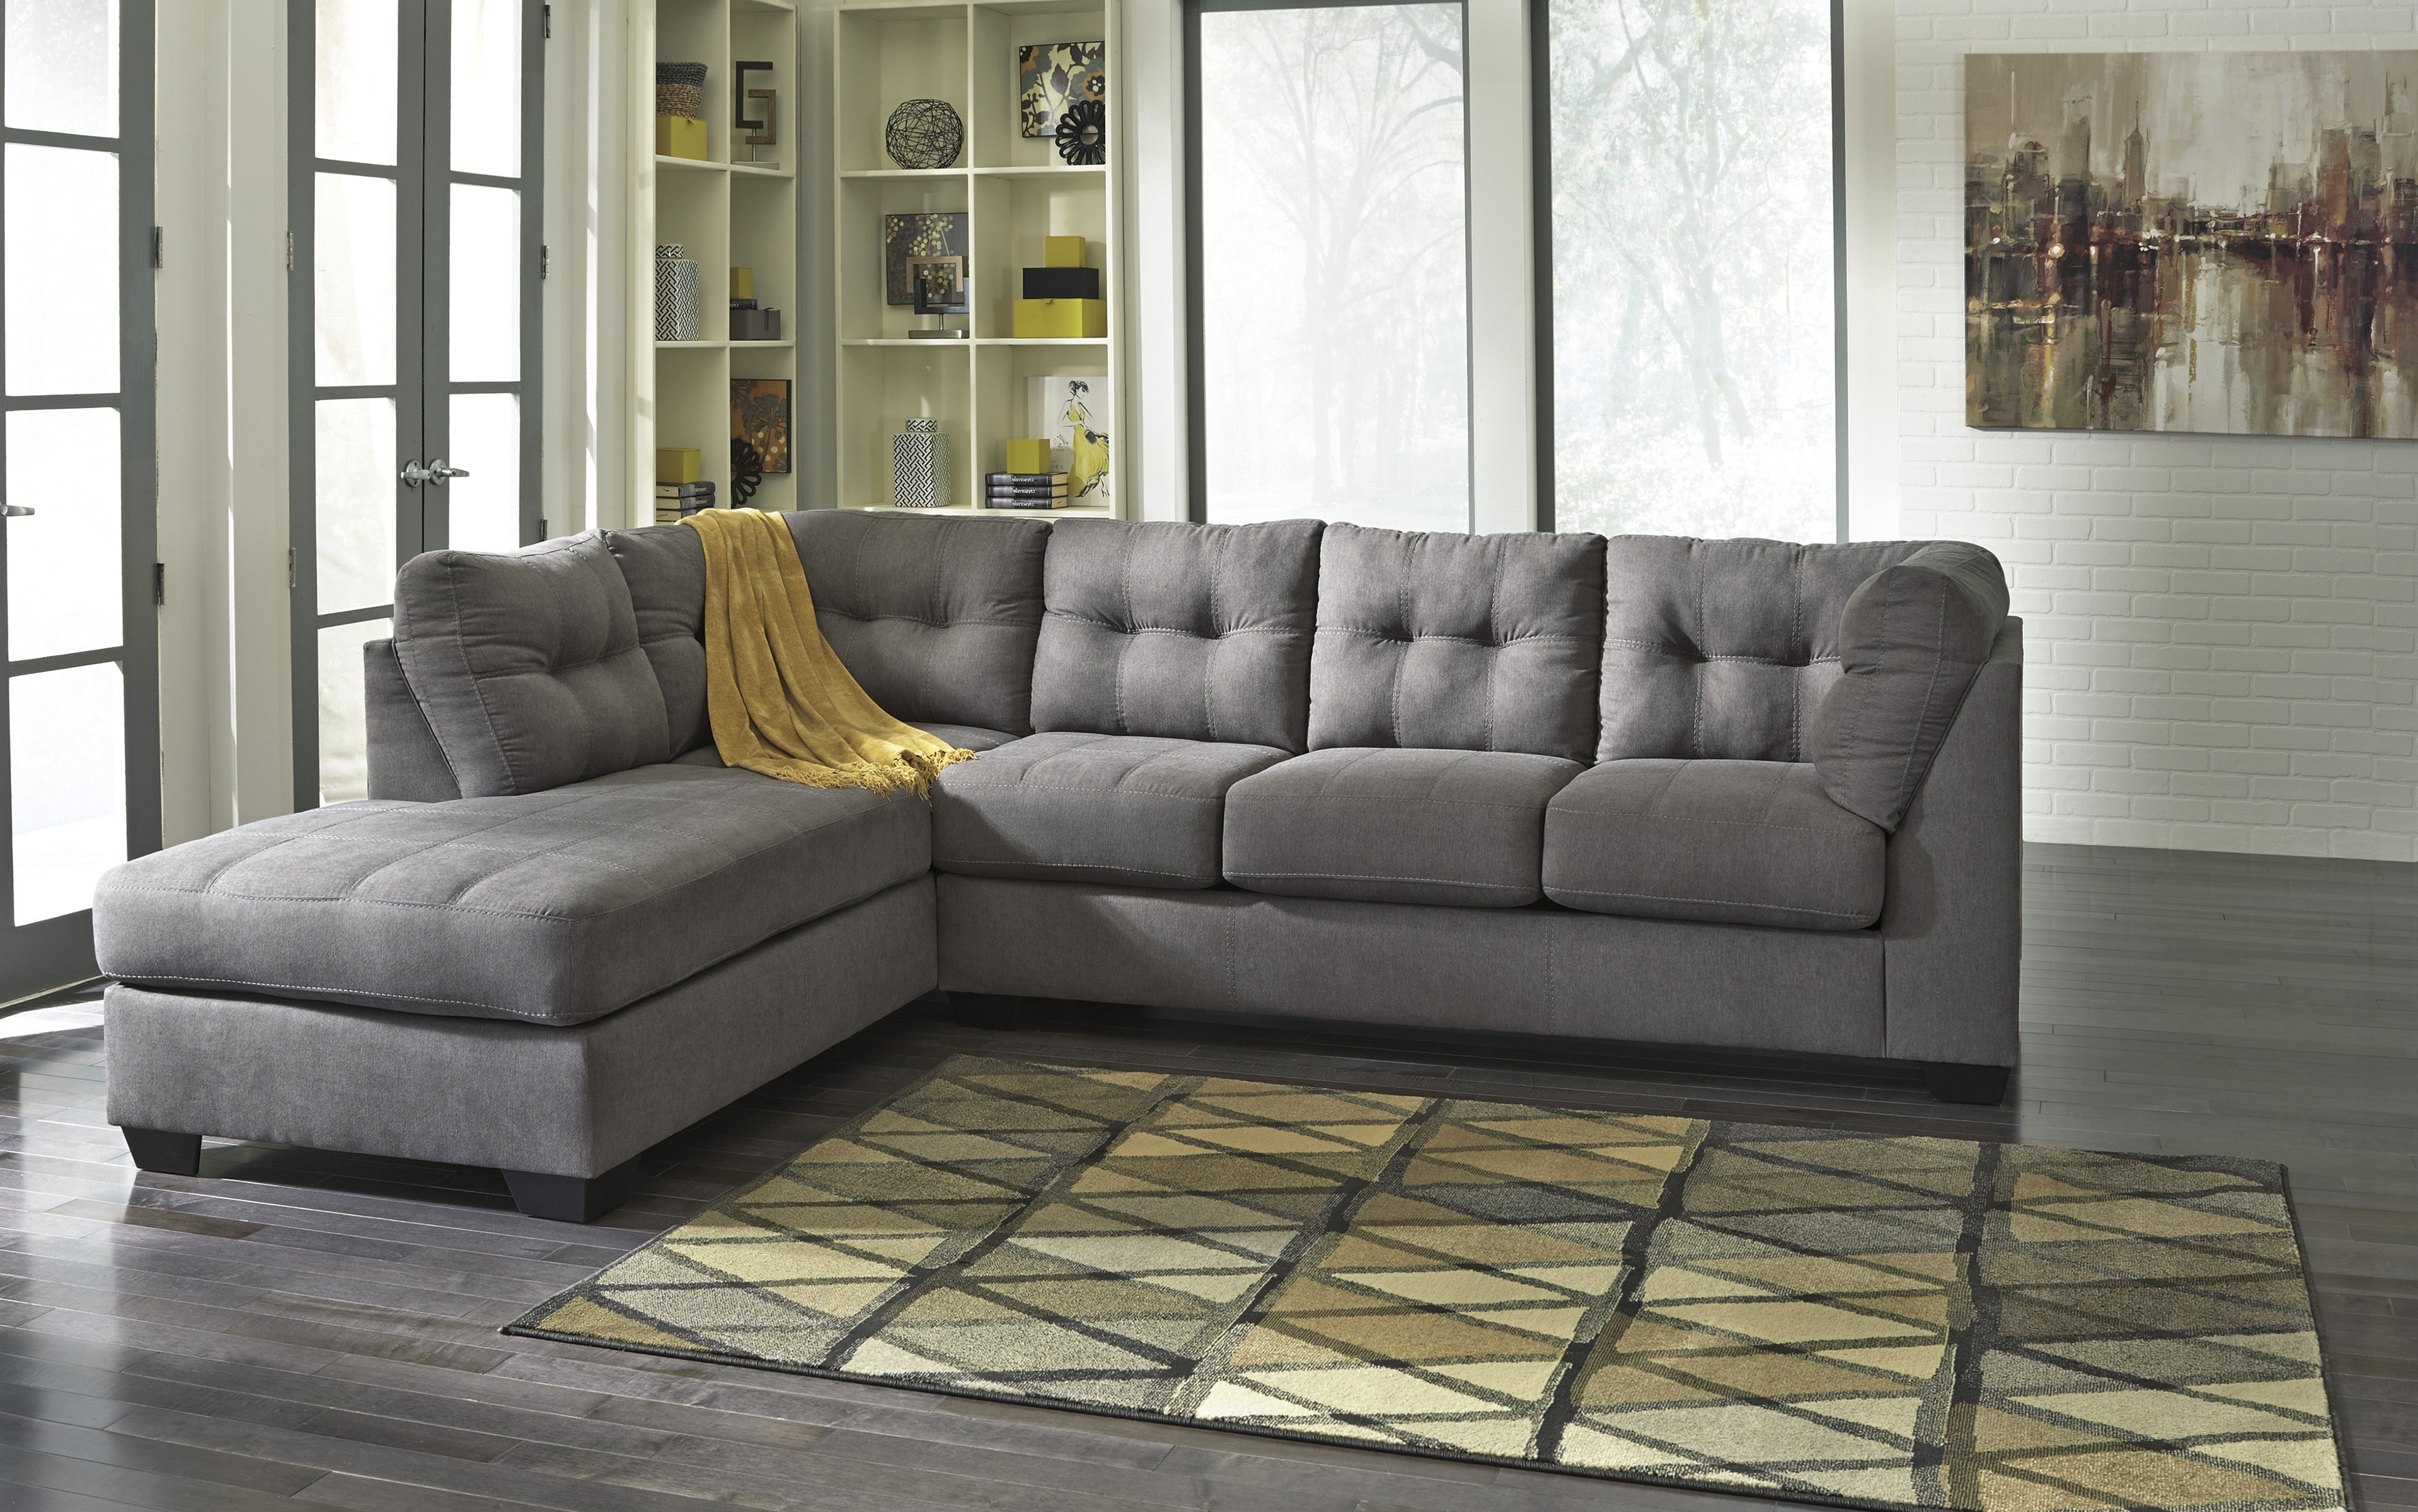 Ashley Furniture Maier Charcoal Raf Chaise Sectional (View 13 of 15)